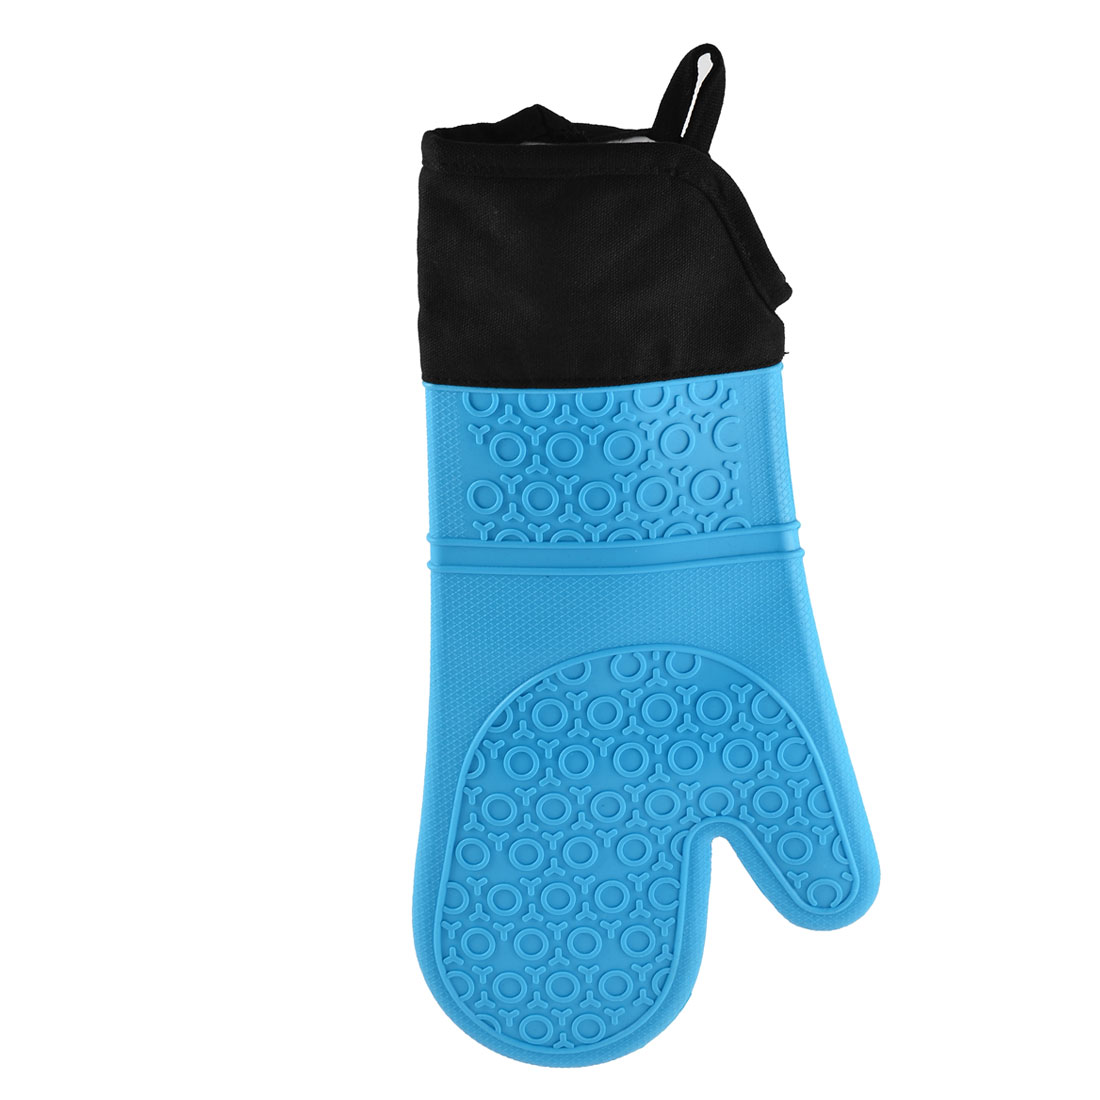 Unique Bargains Kitchen Waterproof Nonslip Quilted Cotton Lining Oven Mitt Glove Blue